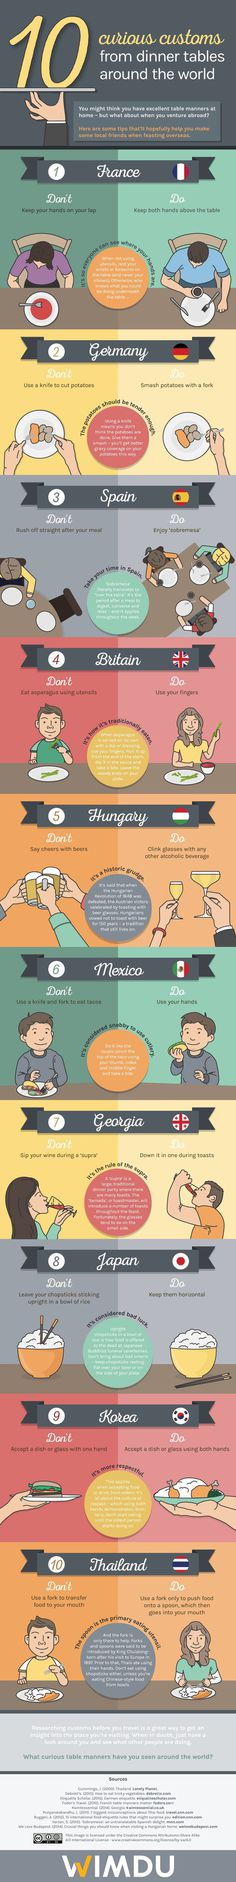 10 Curious Customs from Dinner Tables around the World - Infographic